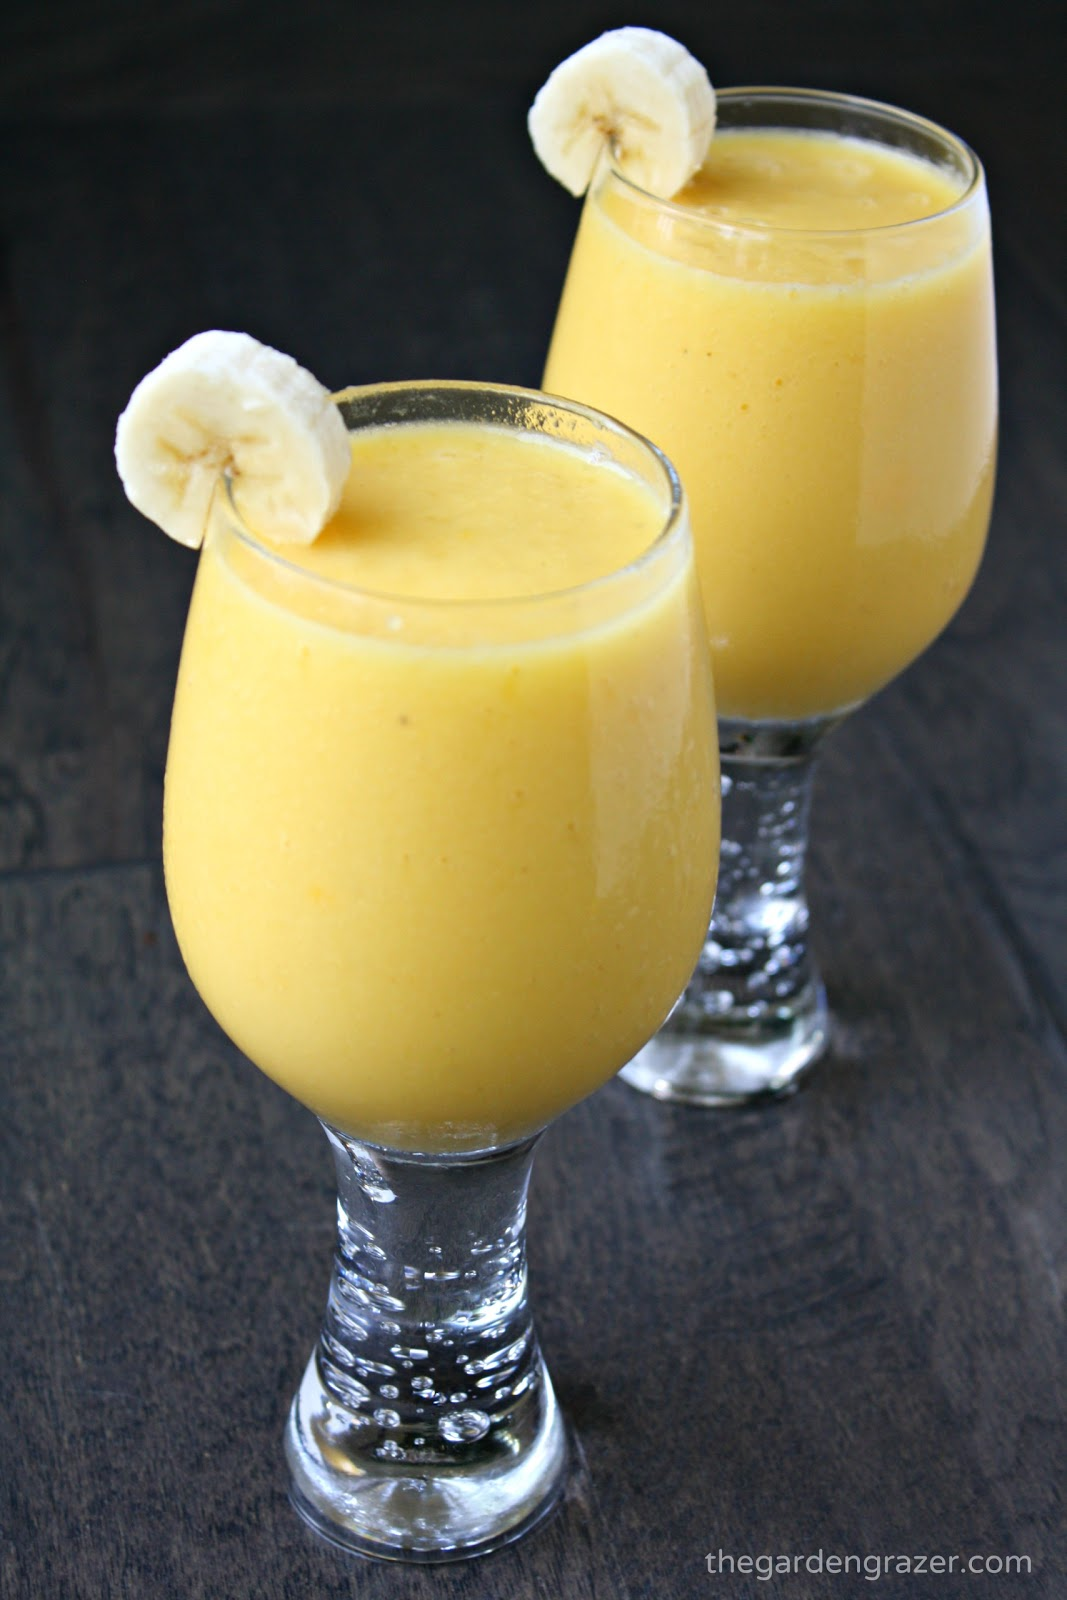 The Garden Grazer Tropical Sunshine Smoothie